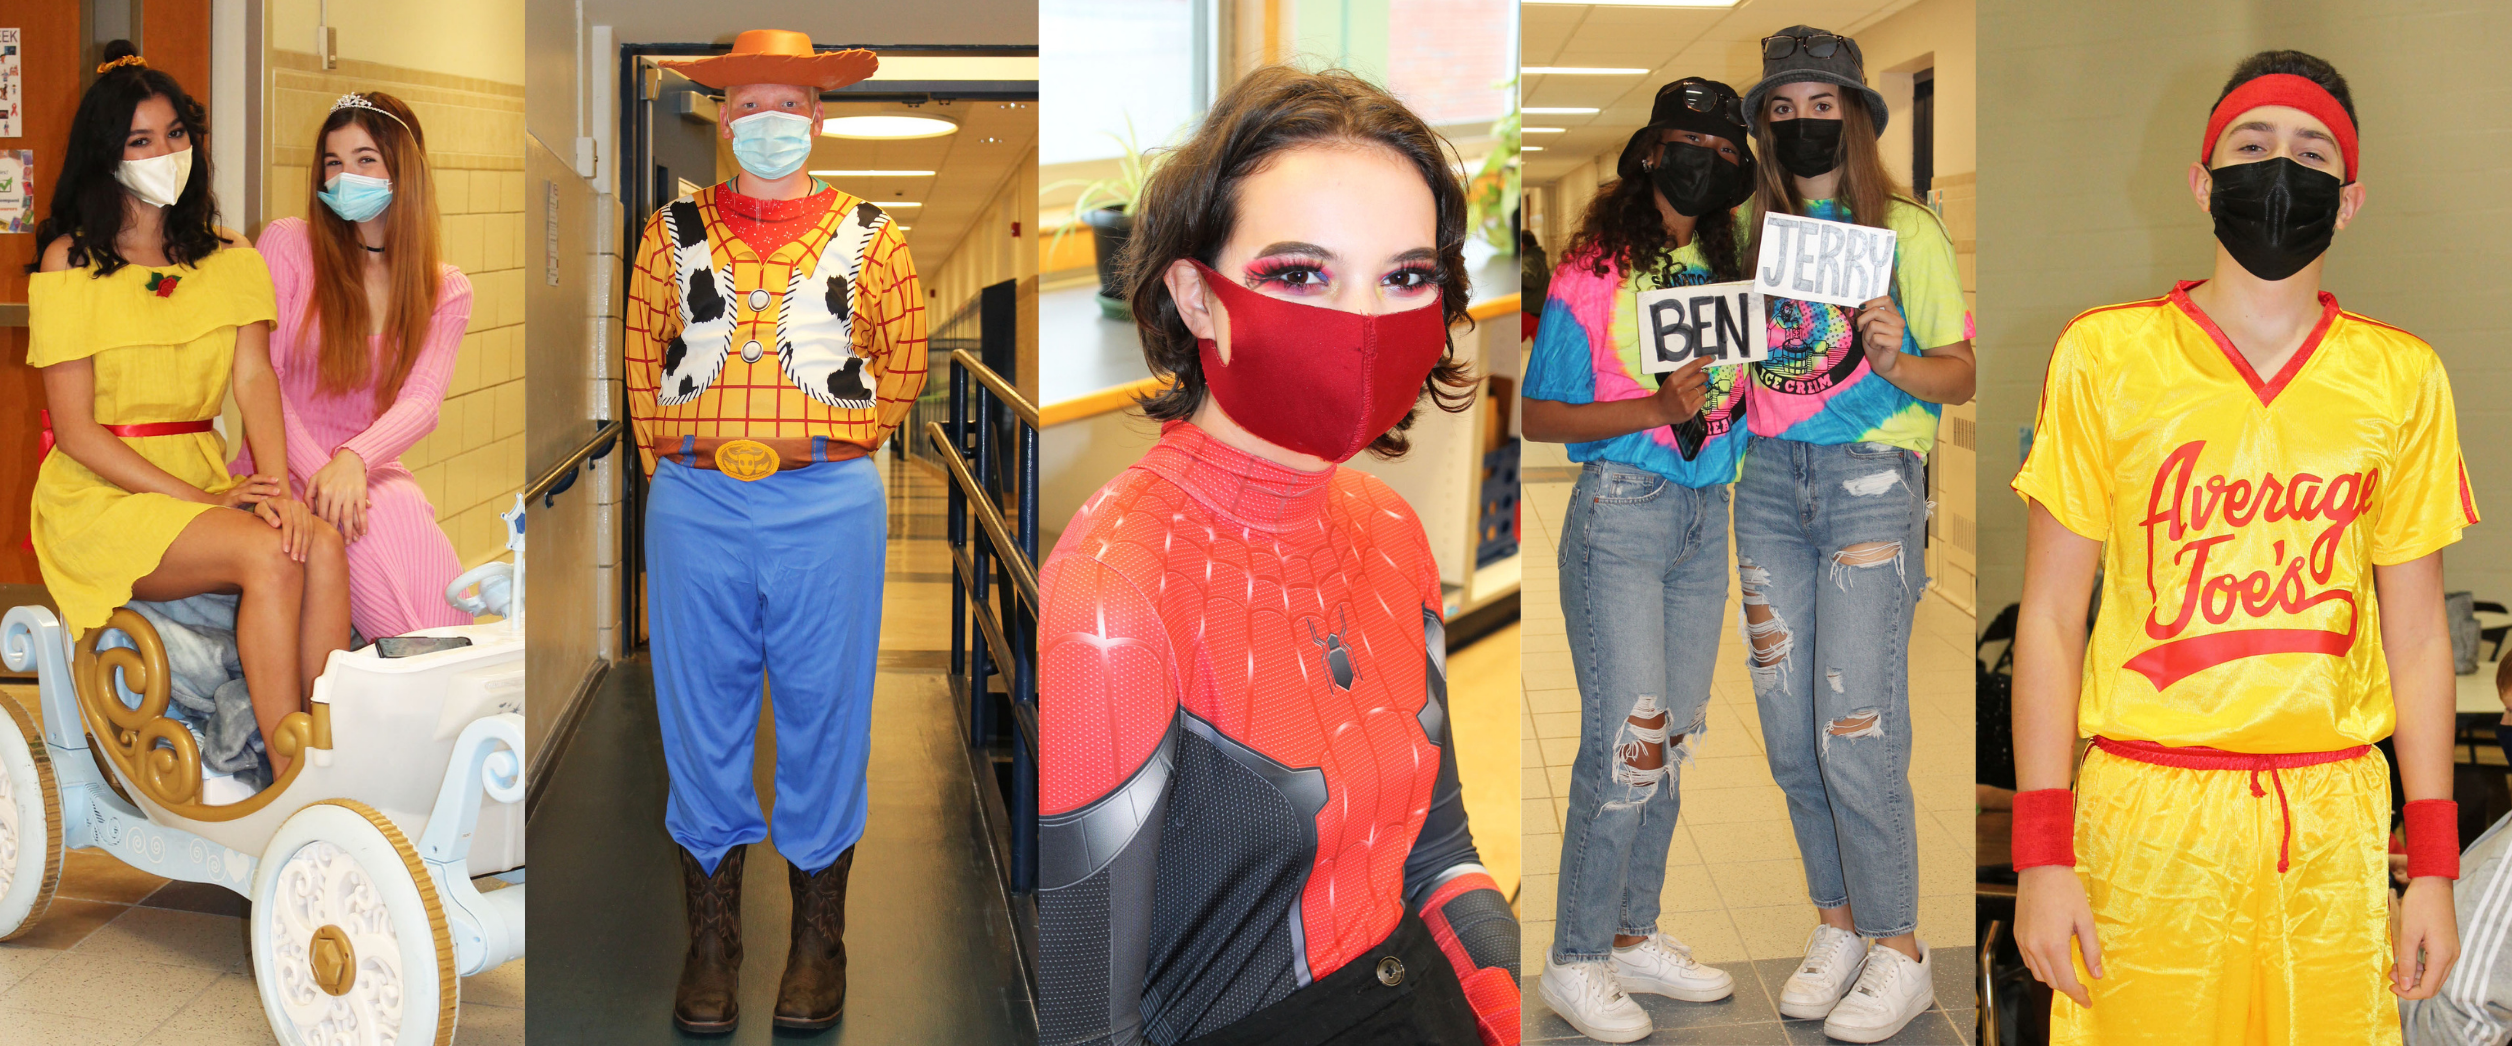 a montage of five photos show students dressed in costume as their favorite characters